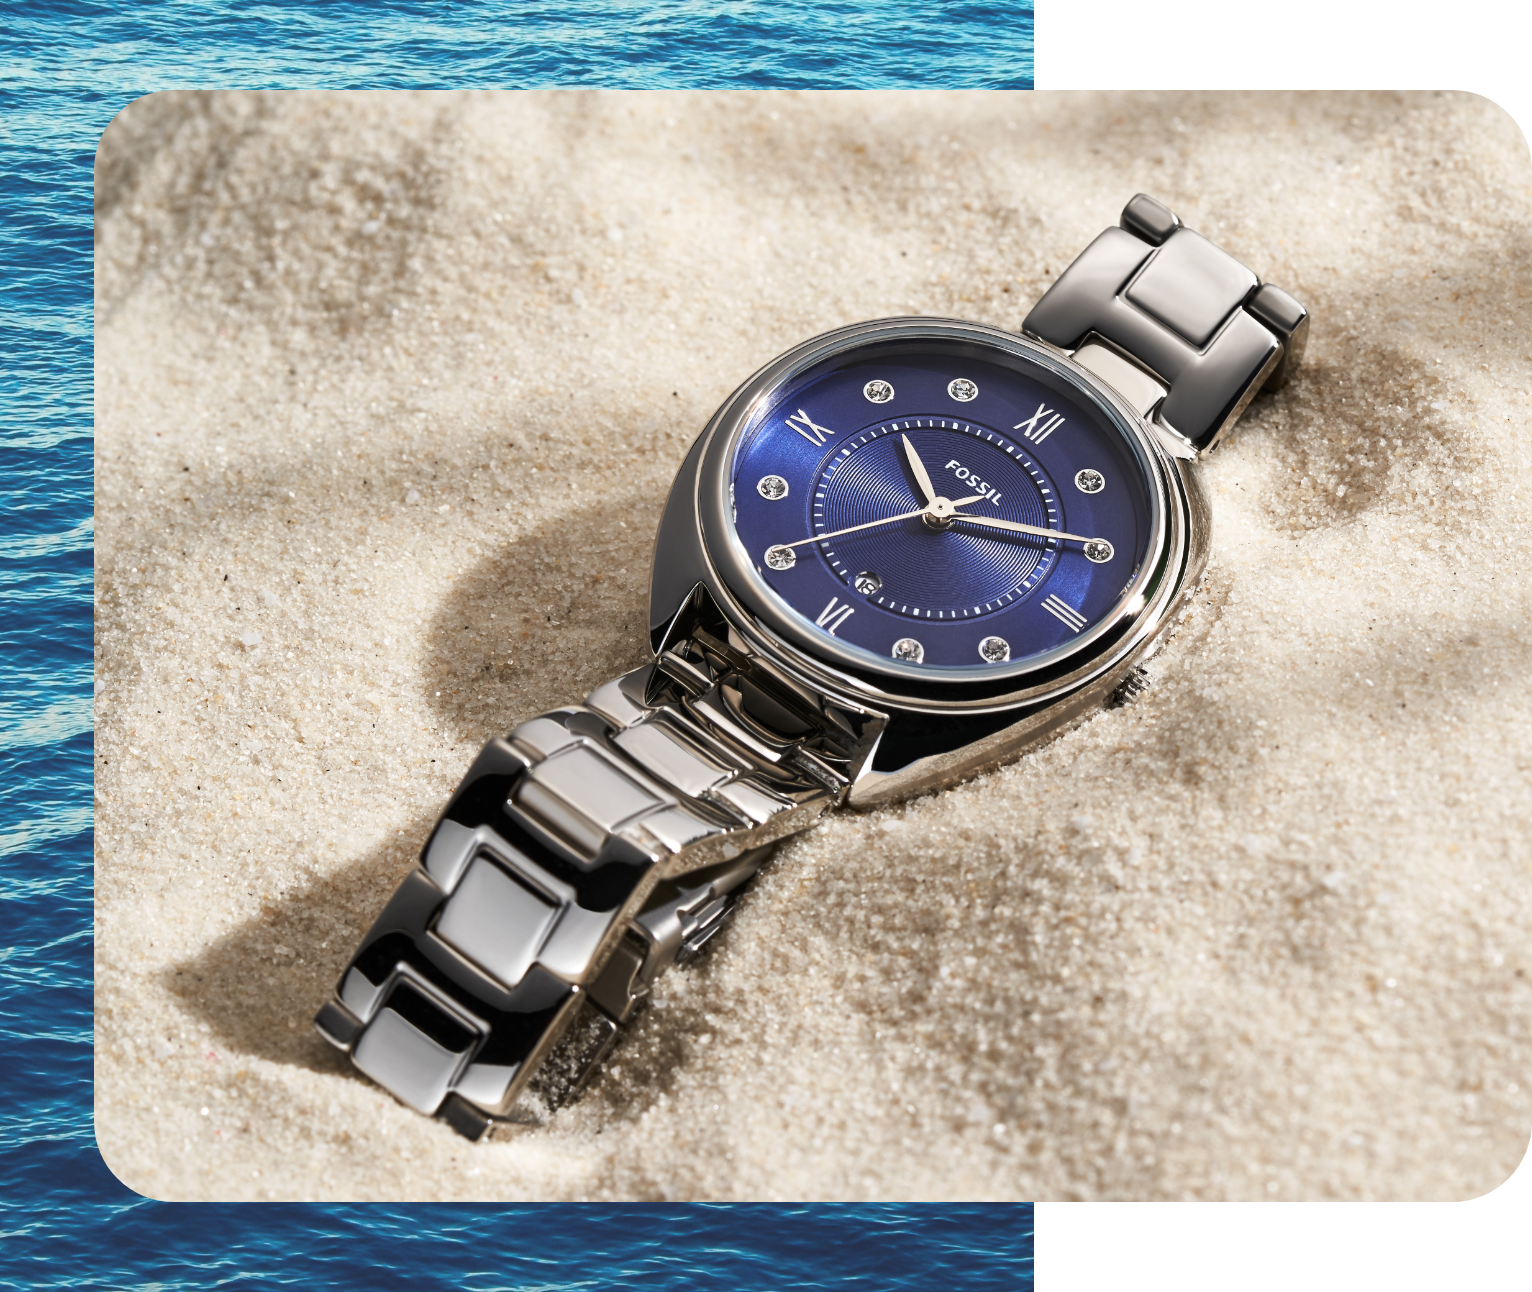 Ladies' Fossil watch featuring blue dial, glitz indexes and stainless steel bracelet.